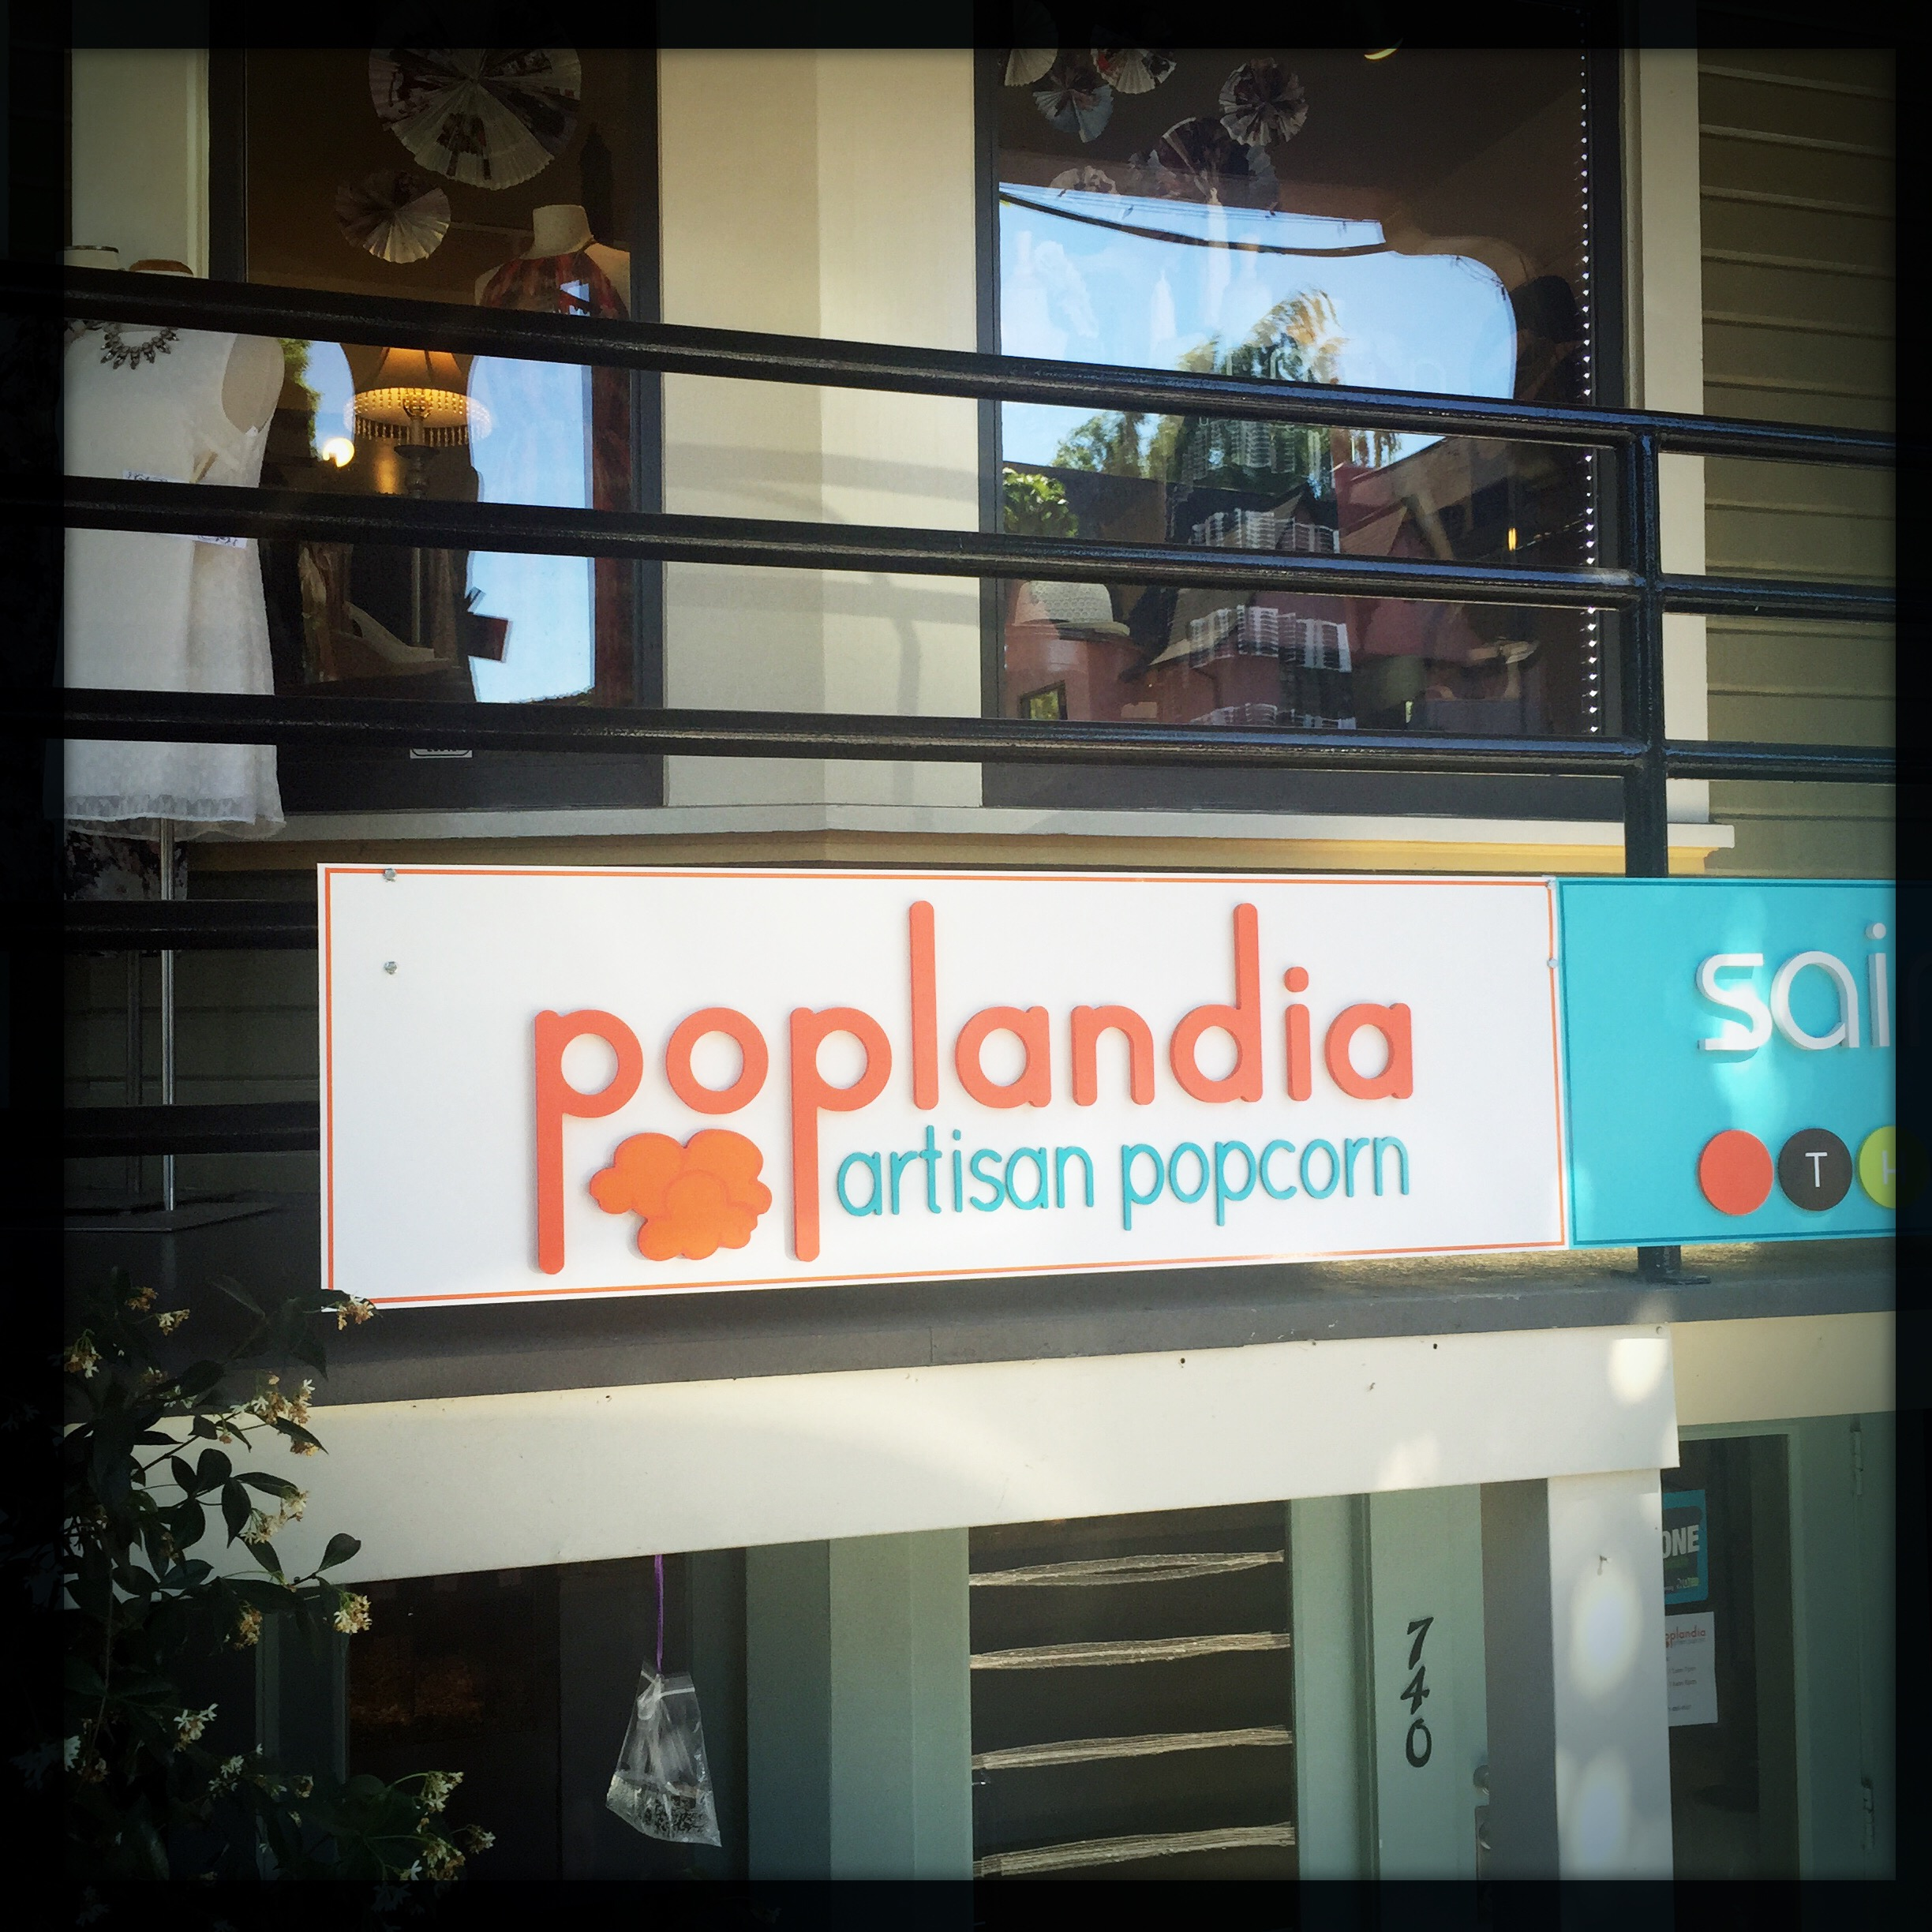 Hipster popcorn on Portland's trendy Northwest side. Photo: Steve Hymon.